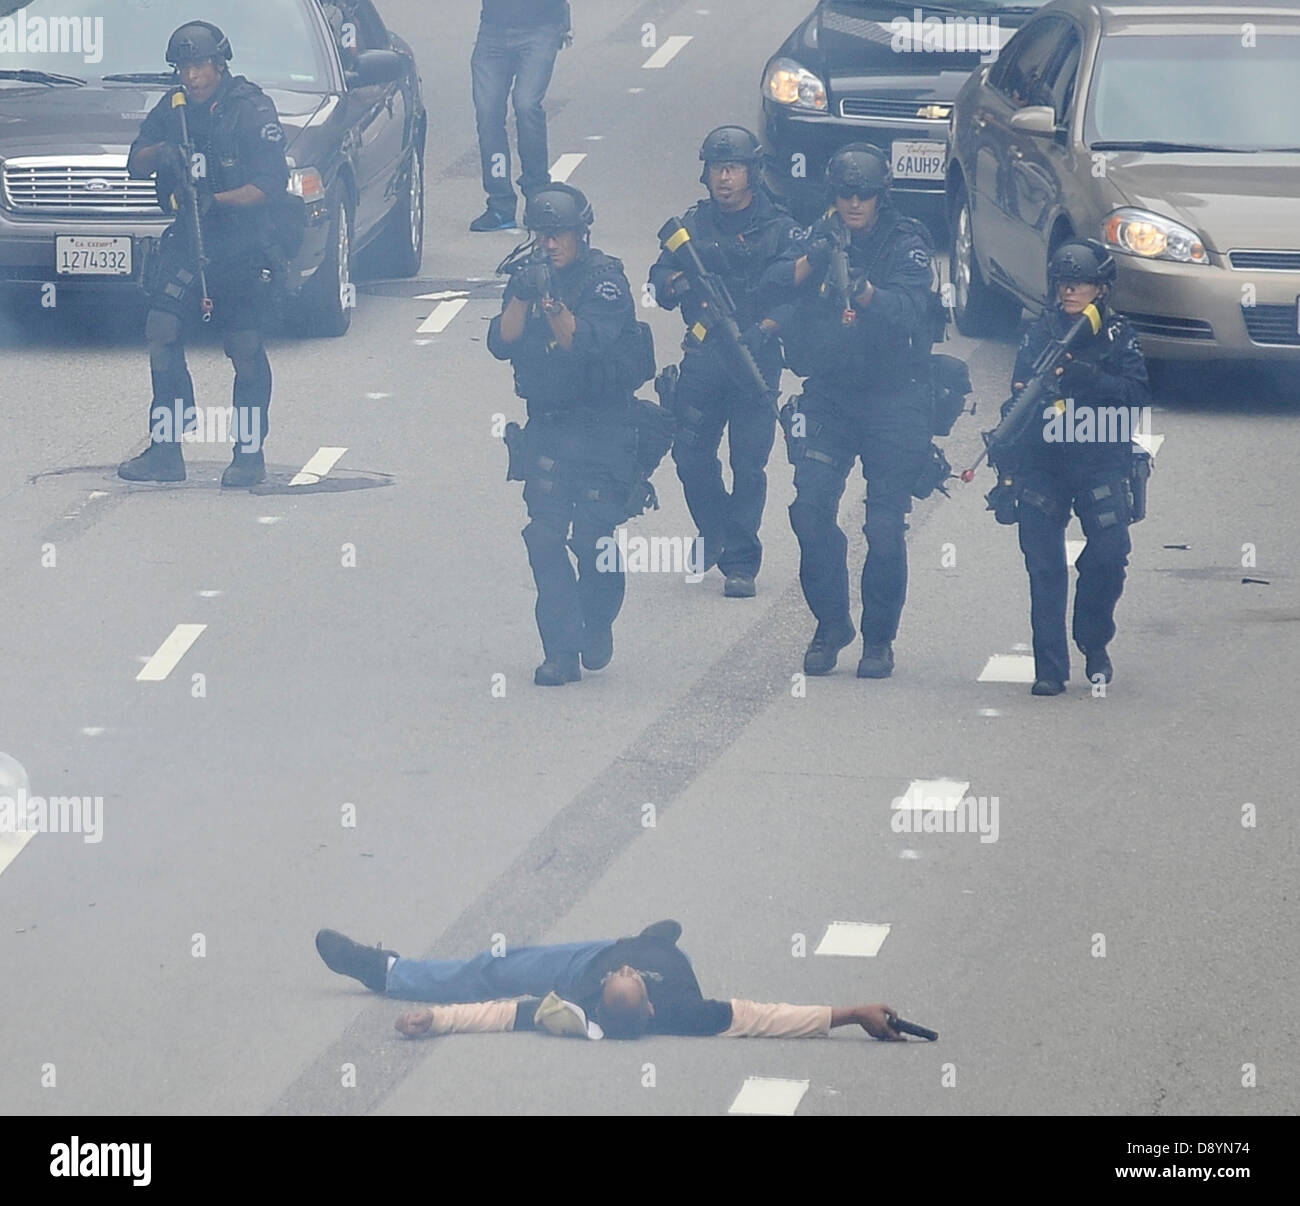 Los Angeles, California, USA  6th June 2013  The Los Angeles Police